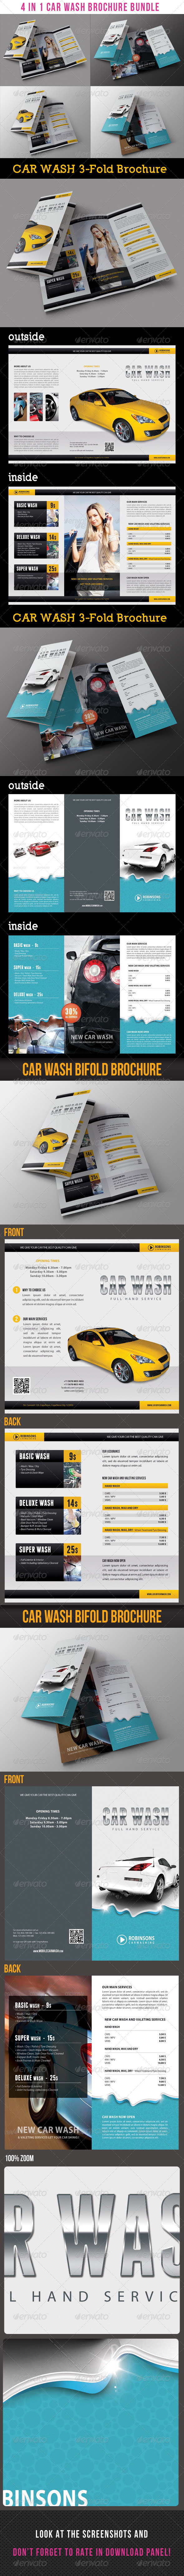 GraphicRiver 4 in 1 Car Wash Multiuse Brochure Bundle 01 8336073